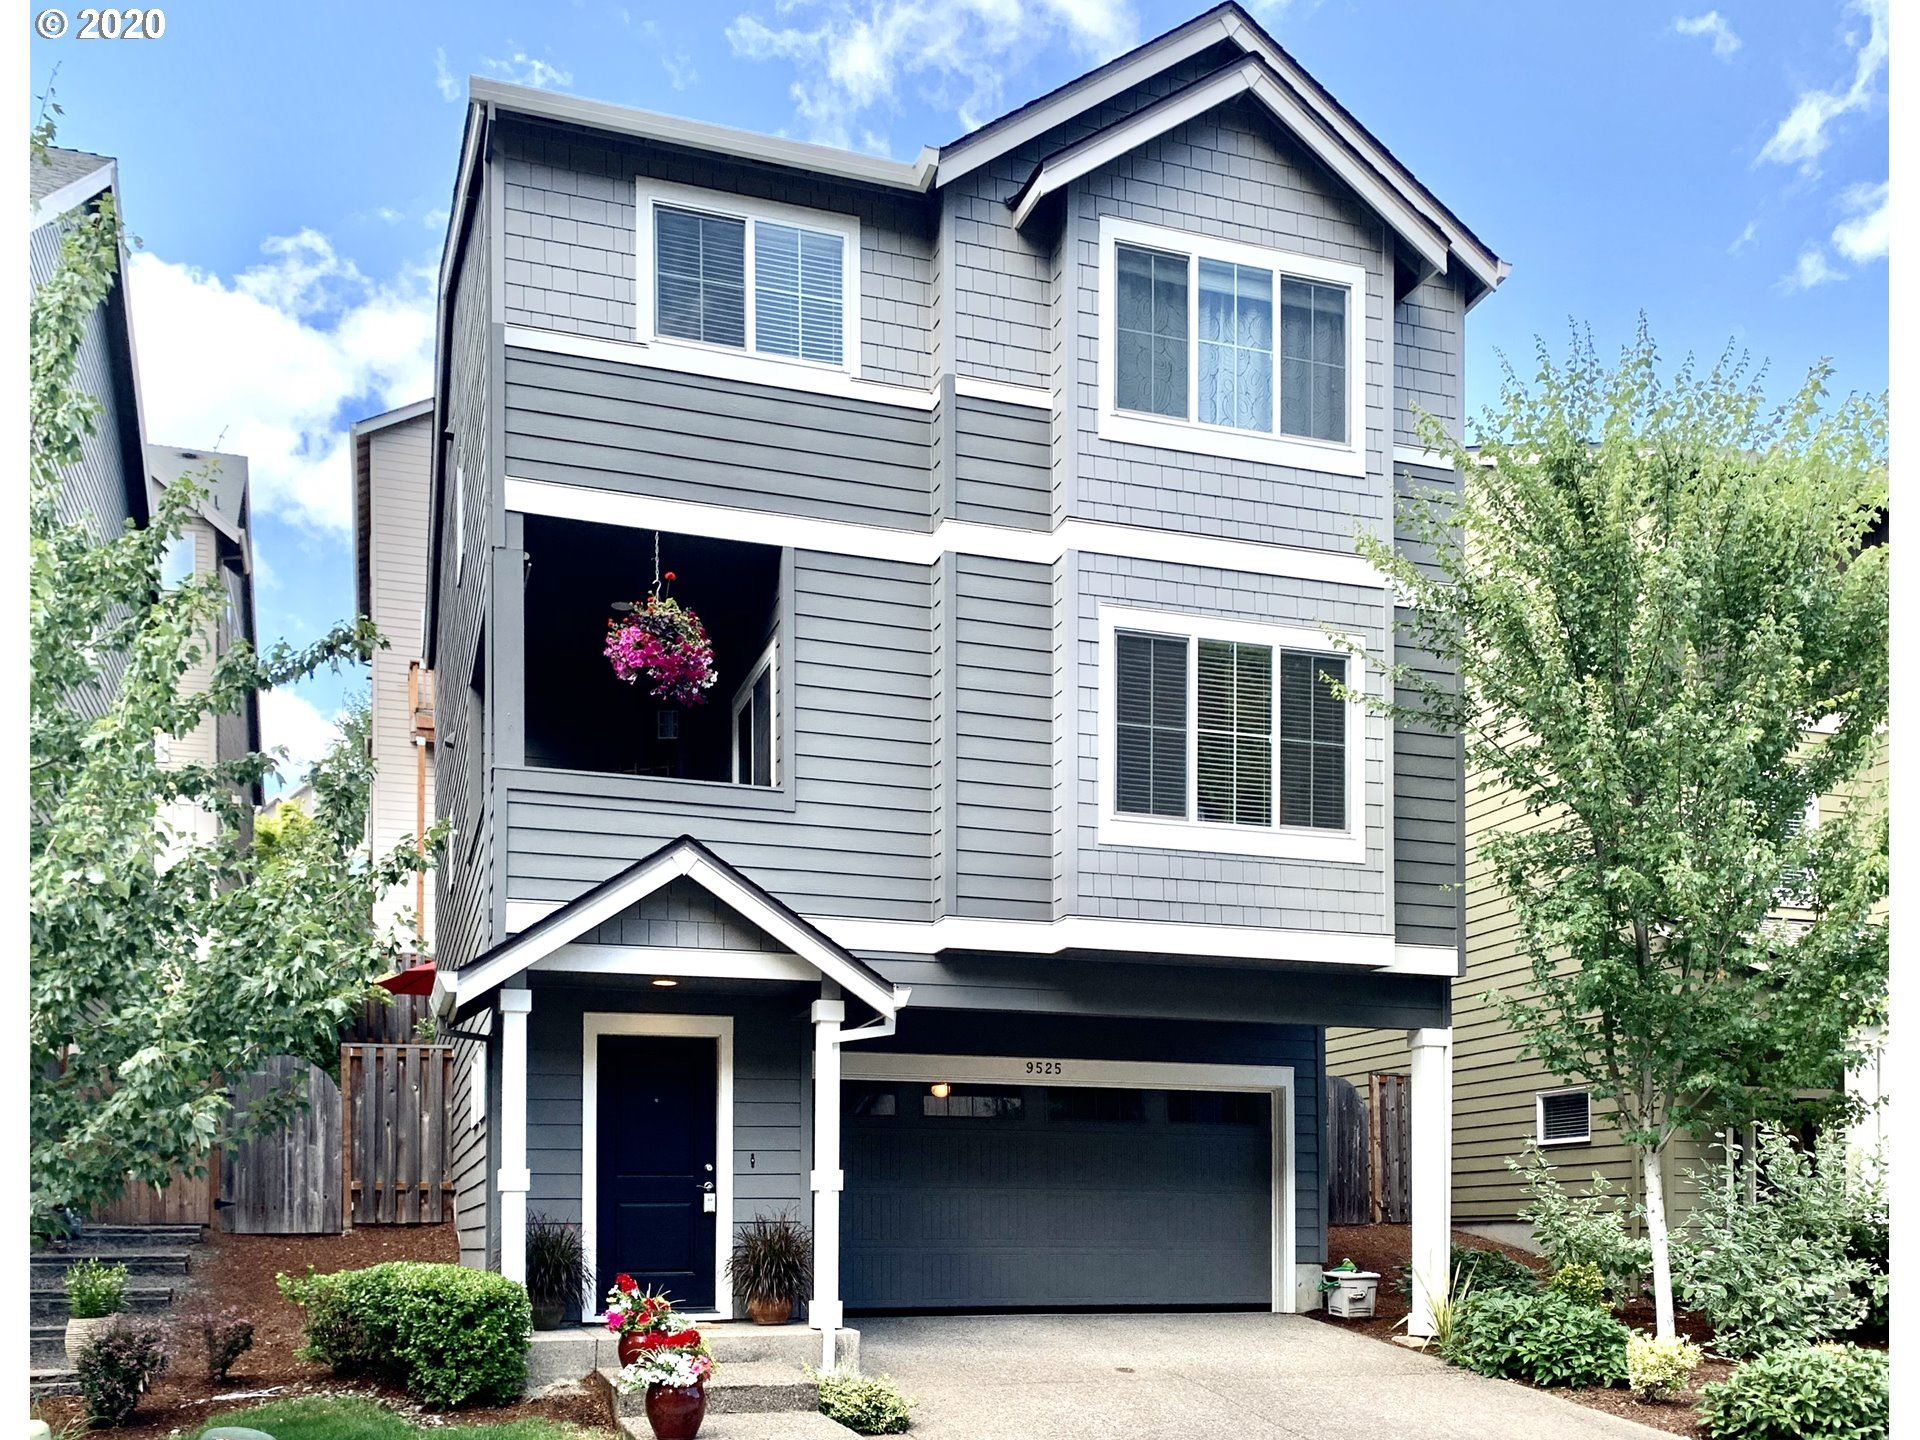 9525 NW HARVEST HILL DR, Portland, OR 97229 - MLS#: 20183925